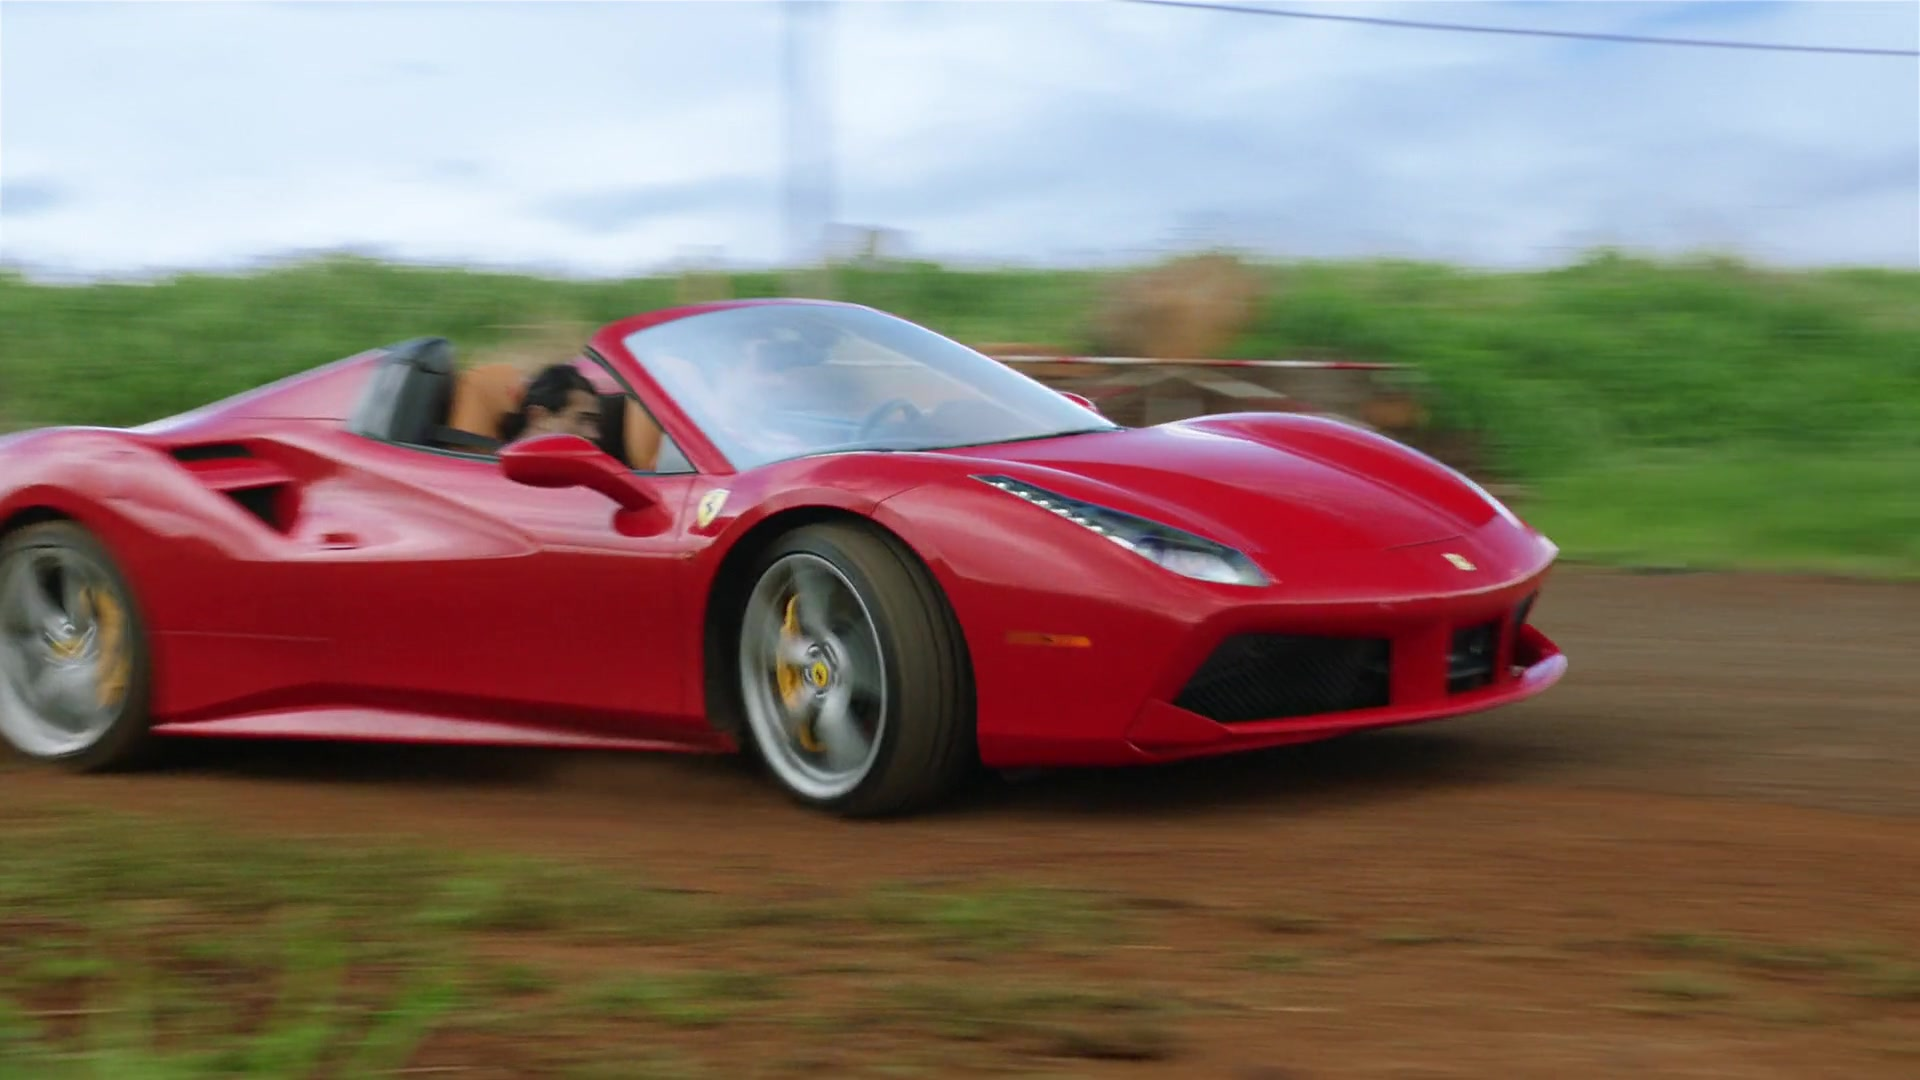 Ferrari 488 Spider Red Sports Car Used by Jay Hernandez in Magnum P.I. Season 1 Episode 8: The ...